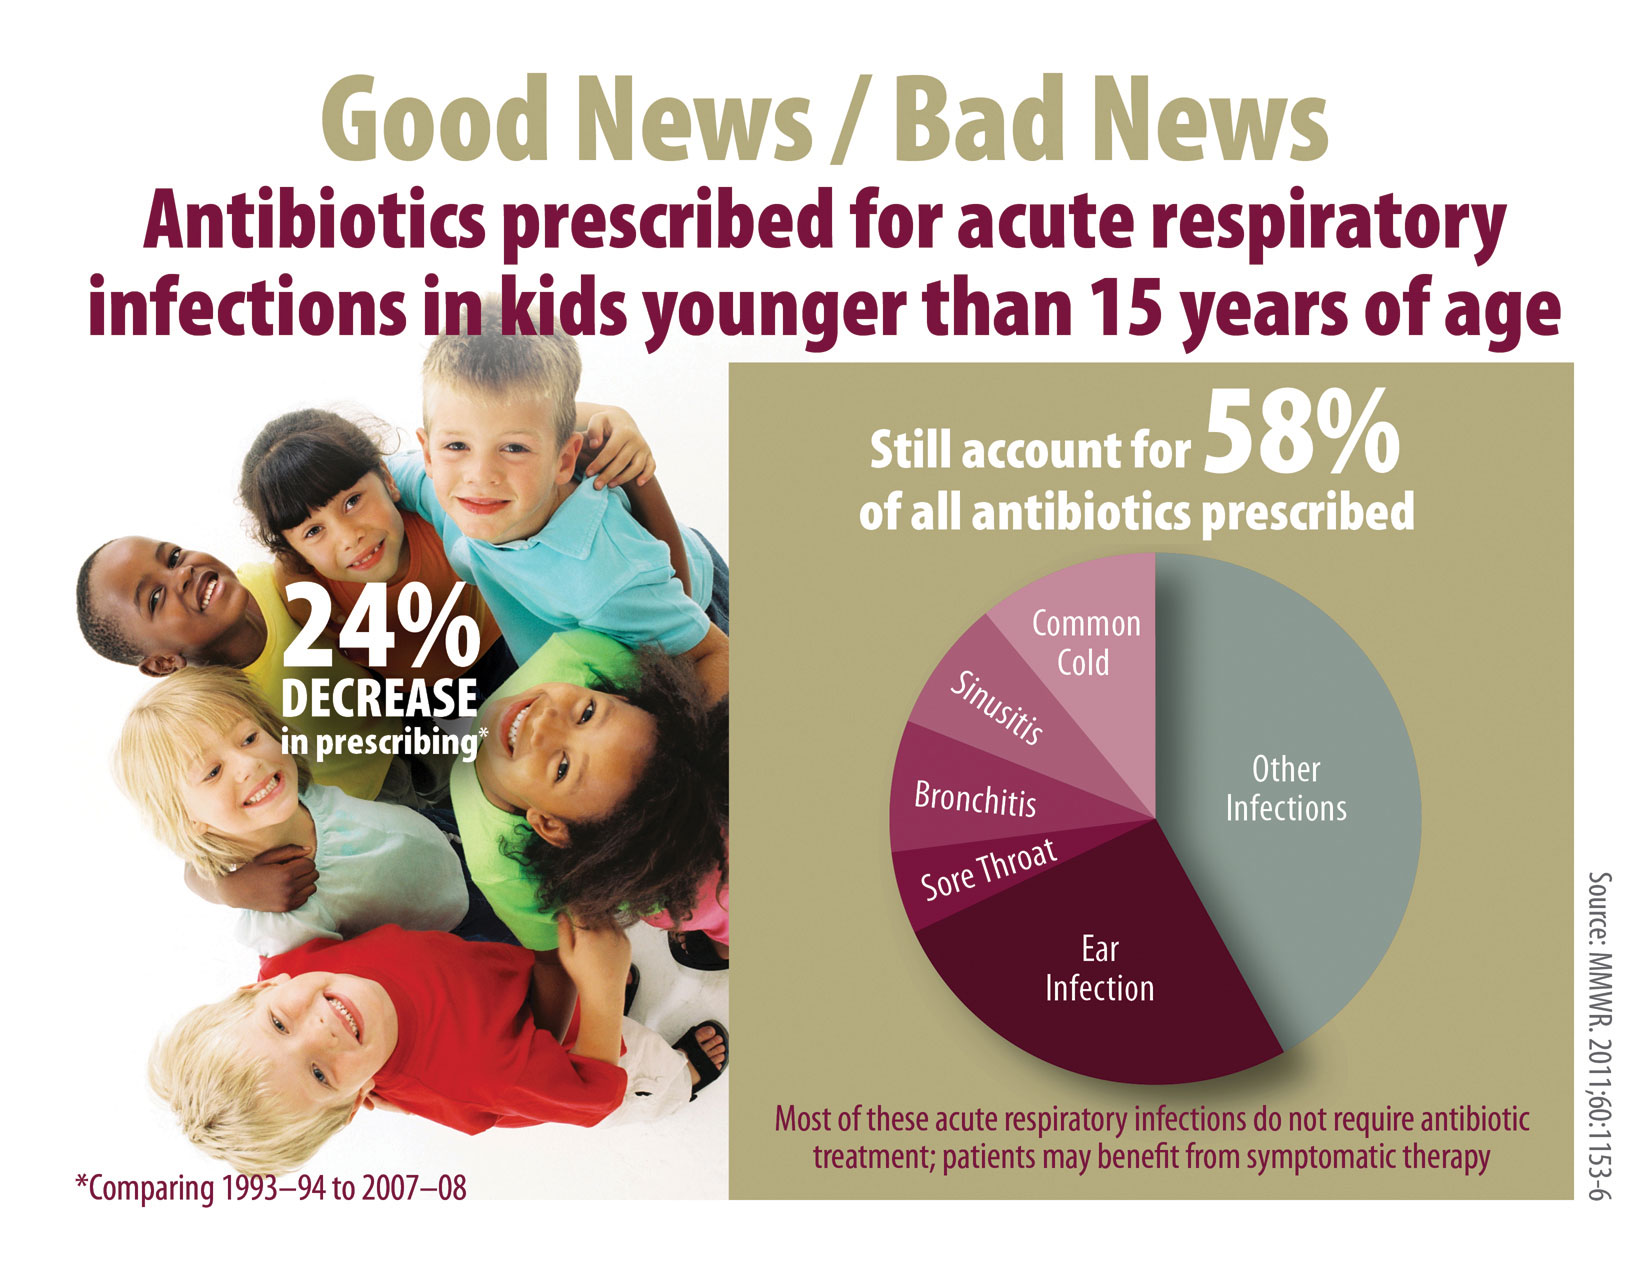 Print only: Infographic (8 ½ by 11)(https://www.cdc.gov/antibiotic-use/ community/images/materials/kids-rx.jpg)